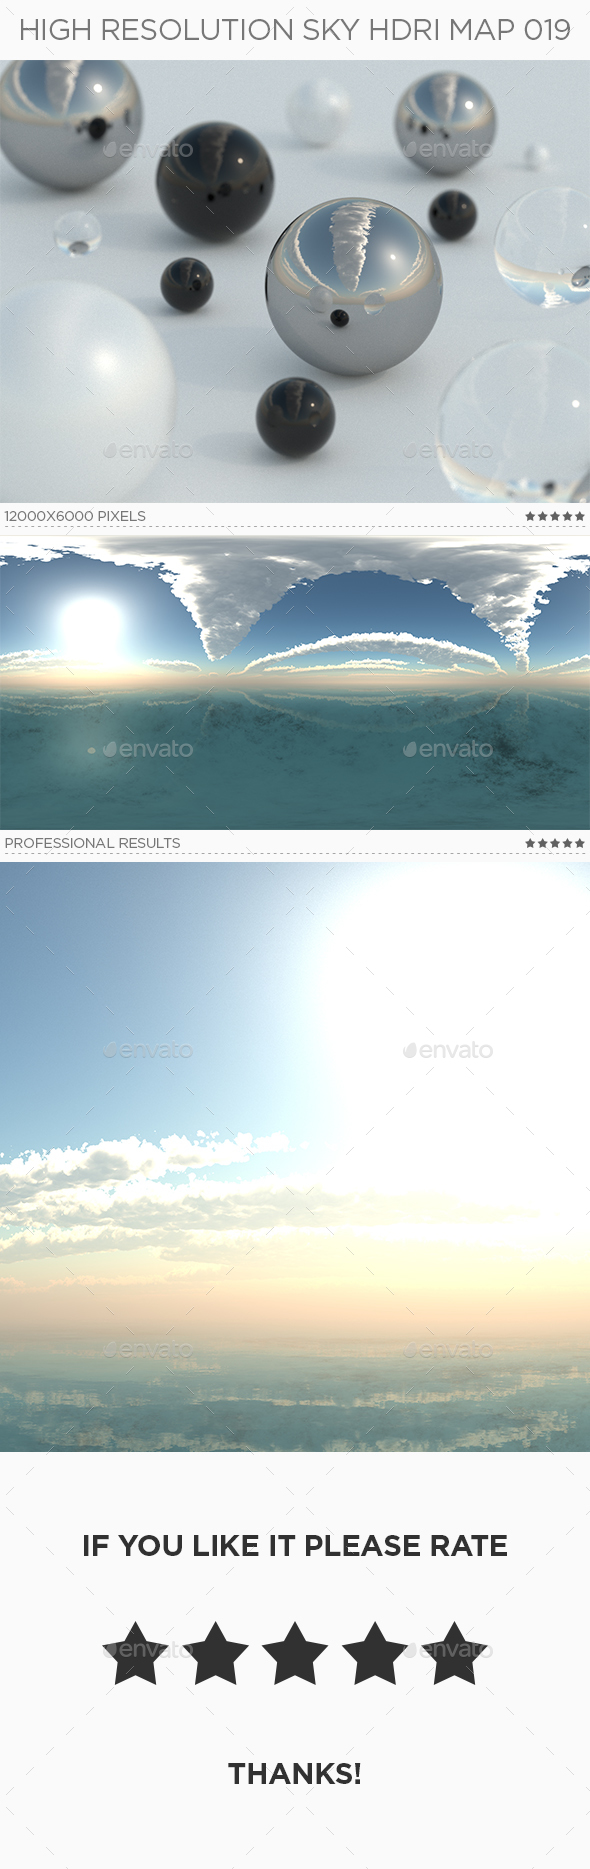 High Resolution Sky HDRi Map 019 - 3DOcean Item for Sale